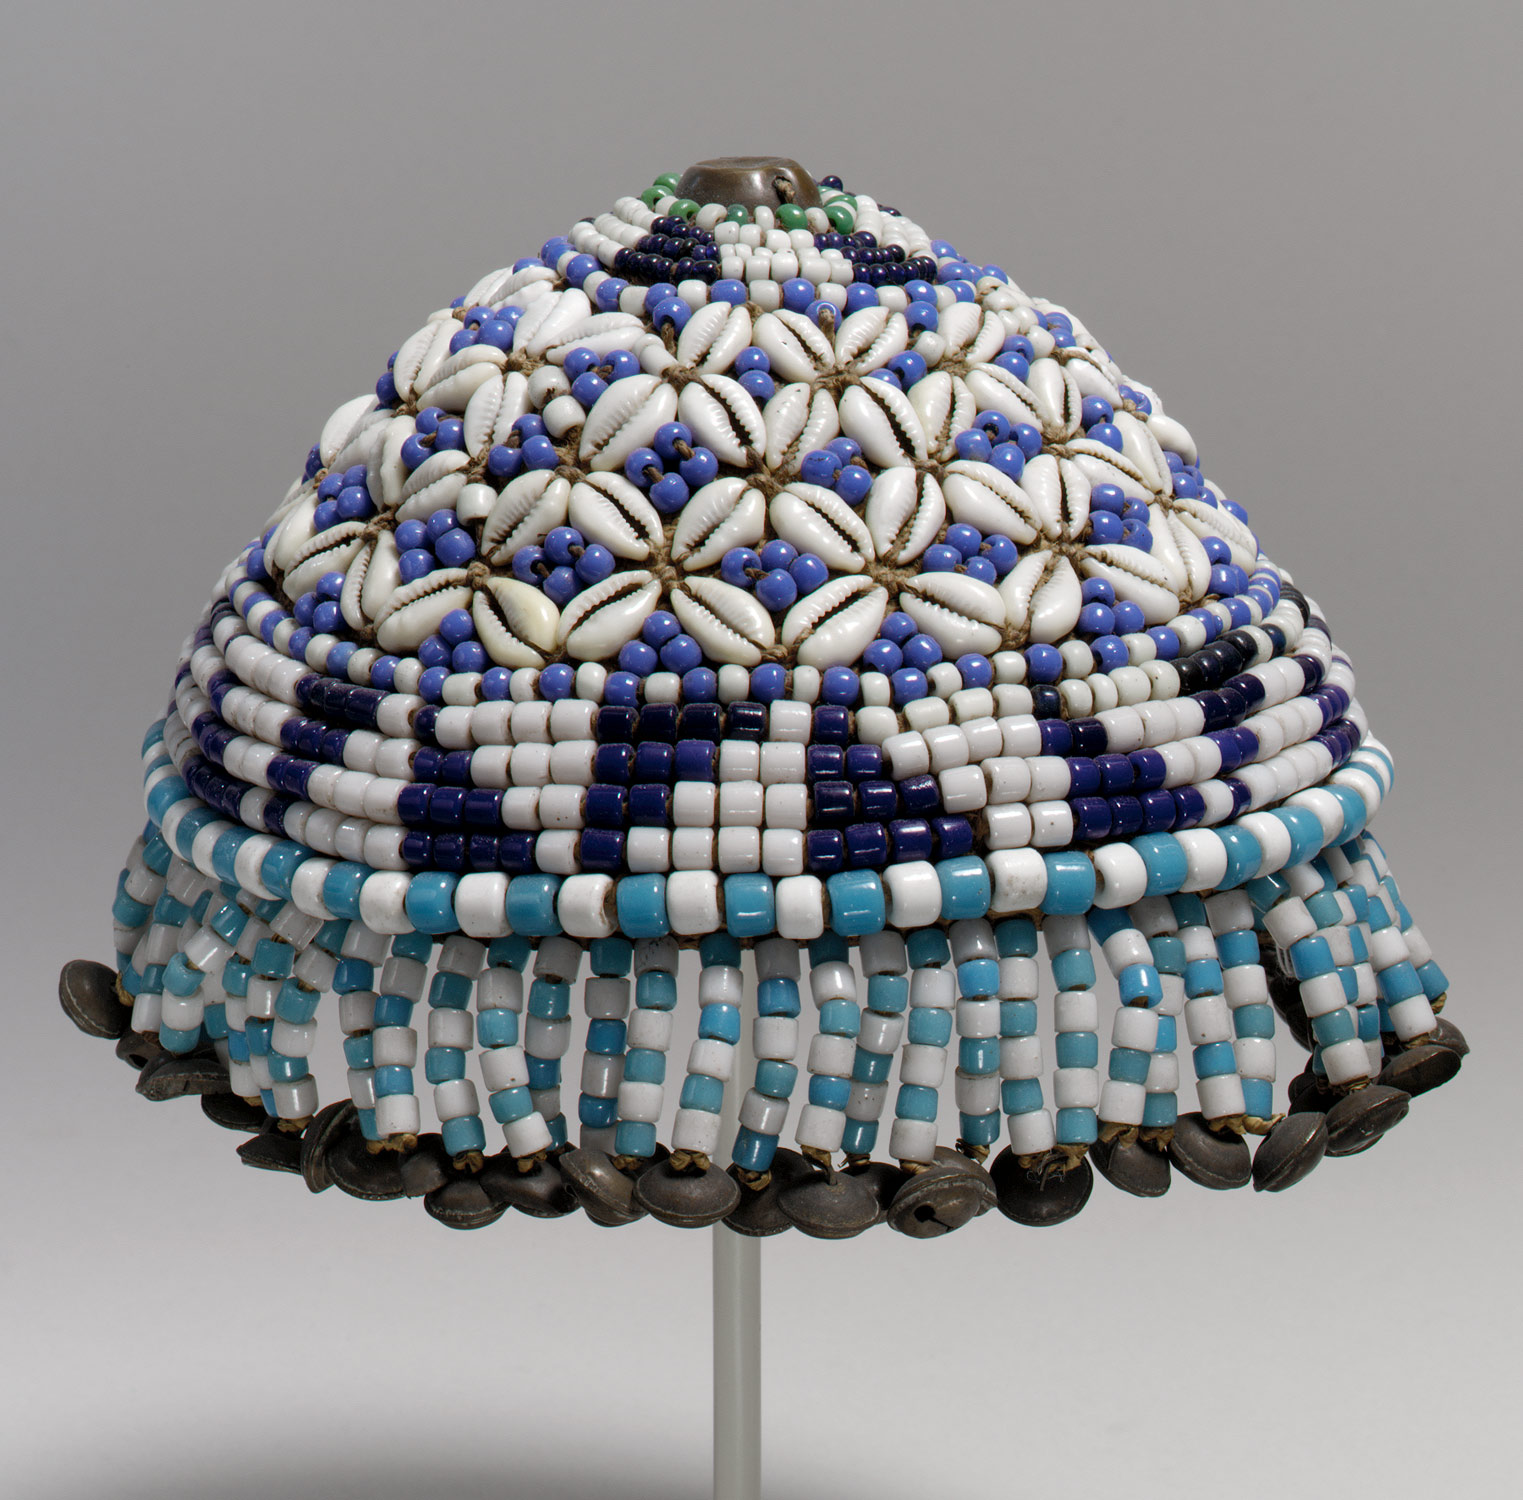 cap made of beads (white, light blue, medium blue, and dark blue) and cowry shells in a decorative pattern